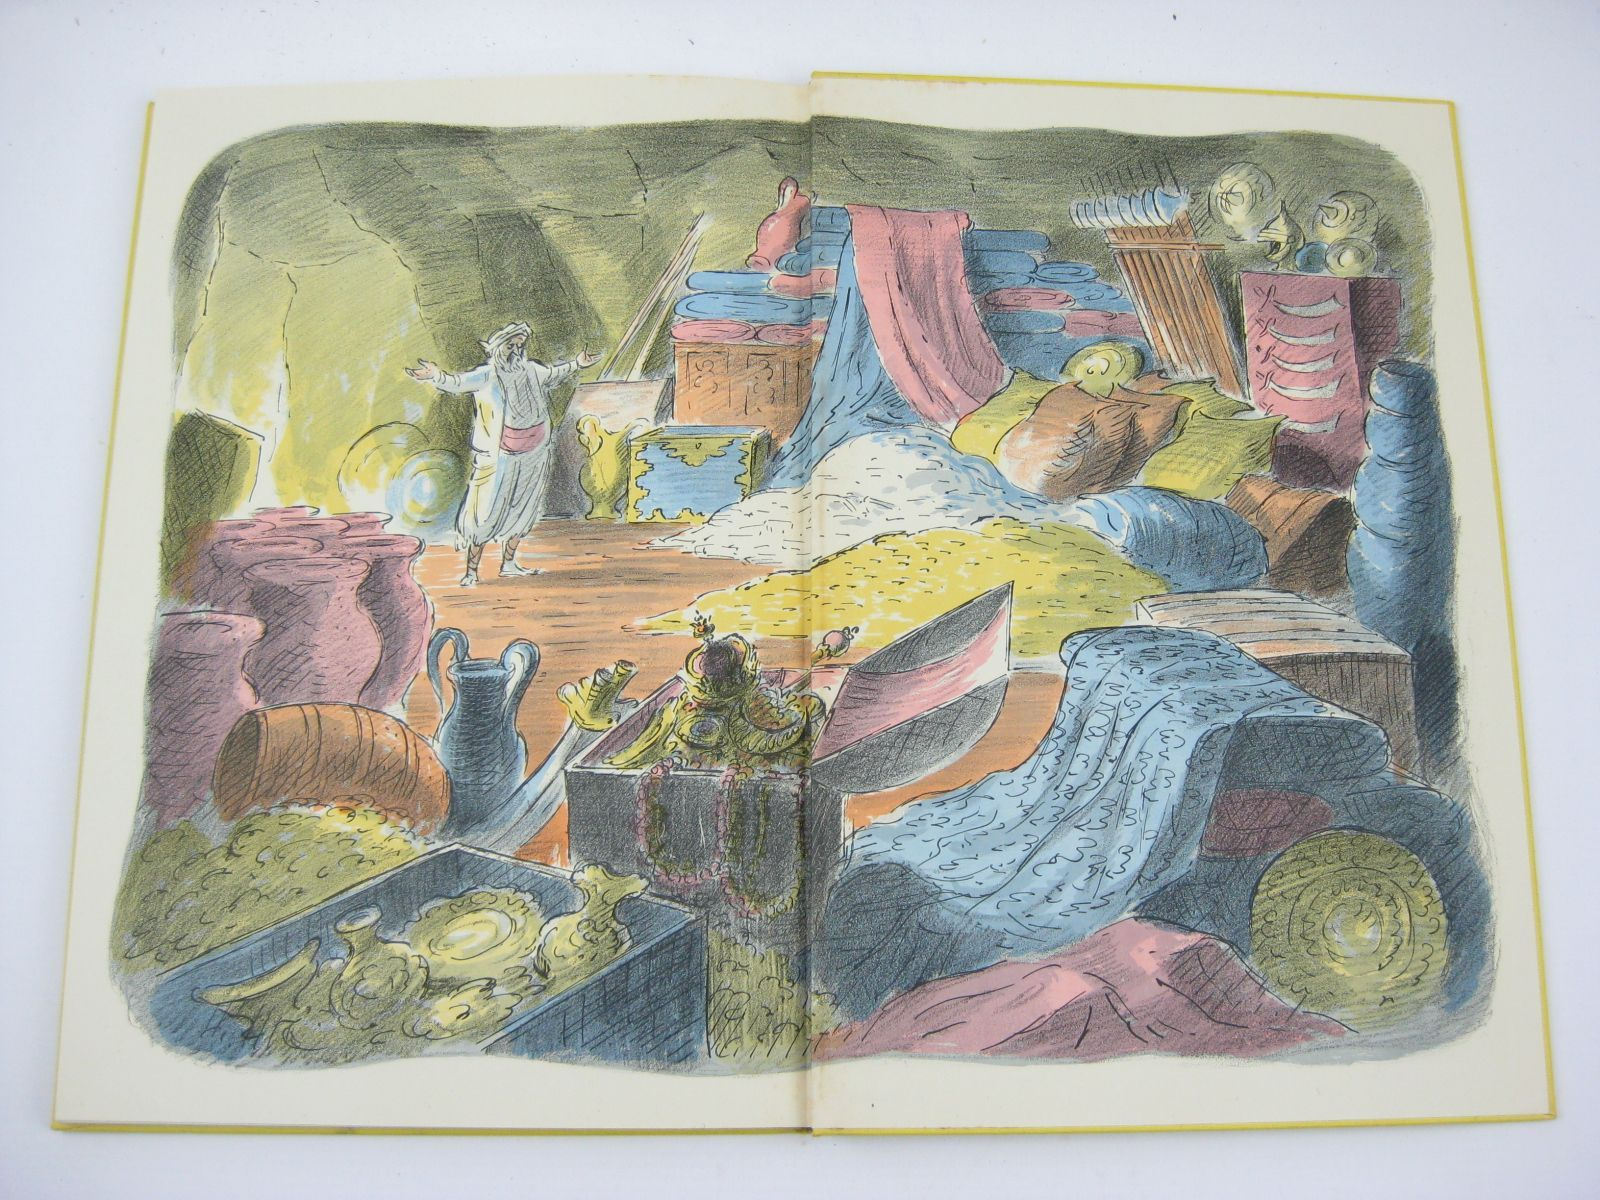 Photo of THE EVERGREEN TALES; OR TALES FOR THE AGELESS written by Mardrus, J.C. Andersen, Hans Christian Perrault, Charles illustrated by Ardizzone, Edward Sauvage, Sylvain Jackson, Everett Gee published by The Limited Editions Club (STOCK CODE: 1316424)  for sale by Stella & Rose's Books